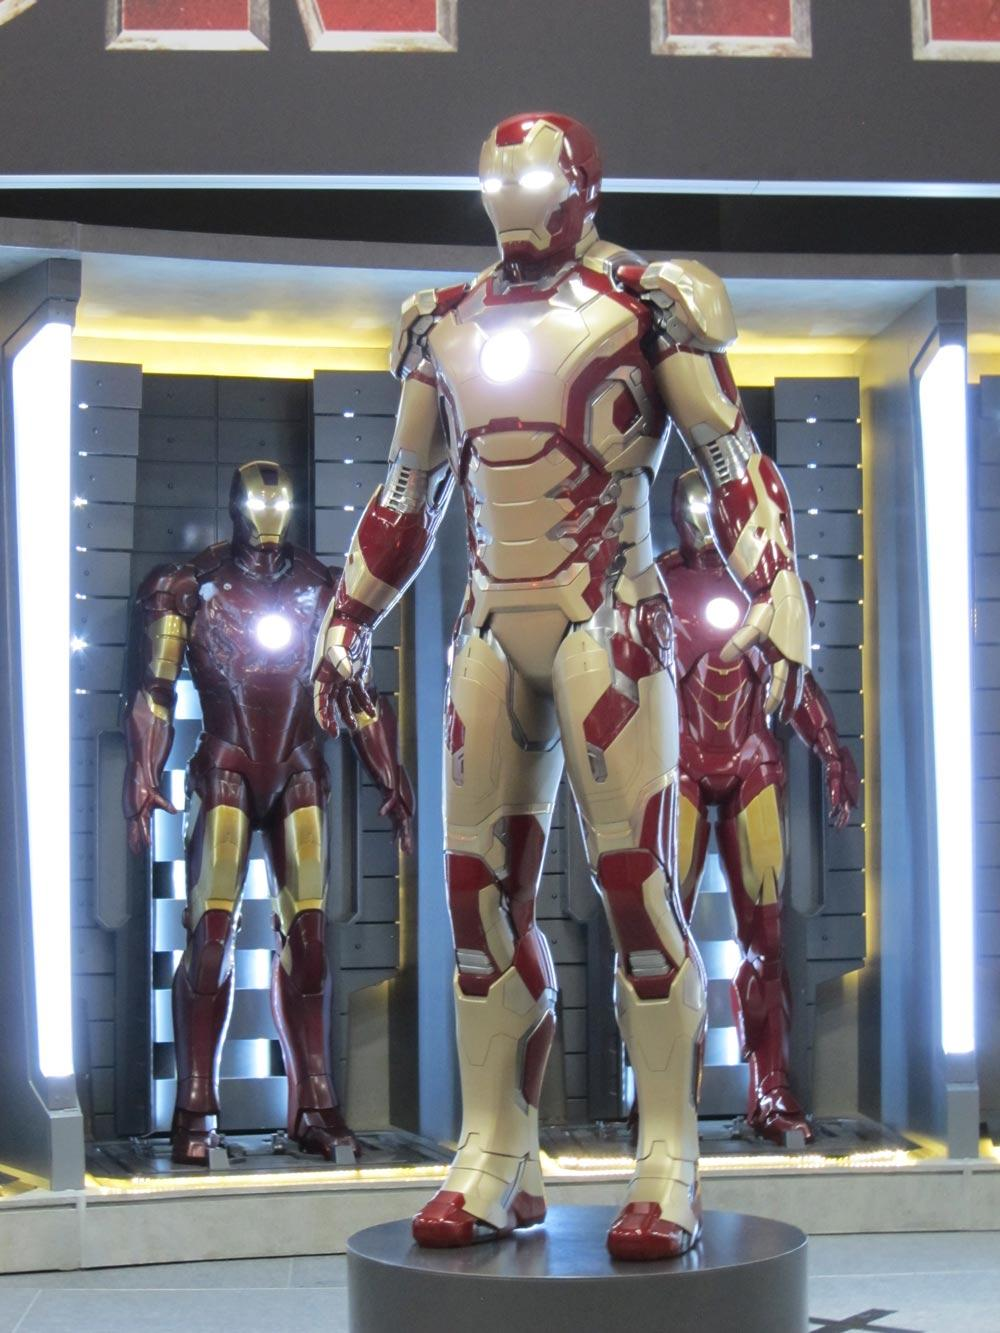 upgraded armor for iron man 3 revealed